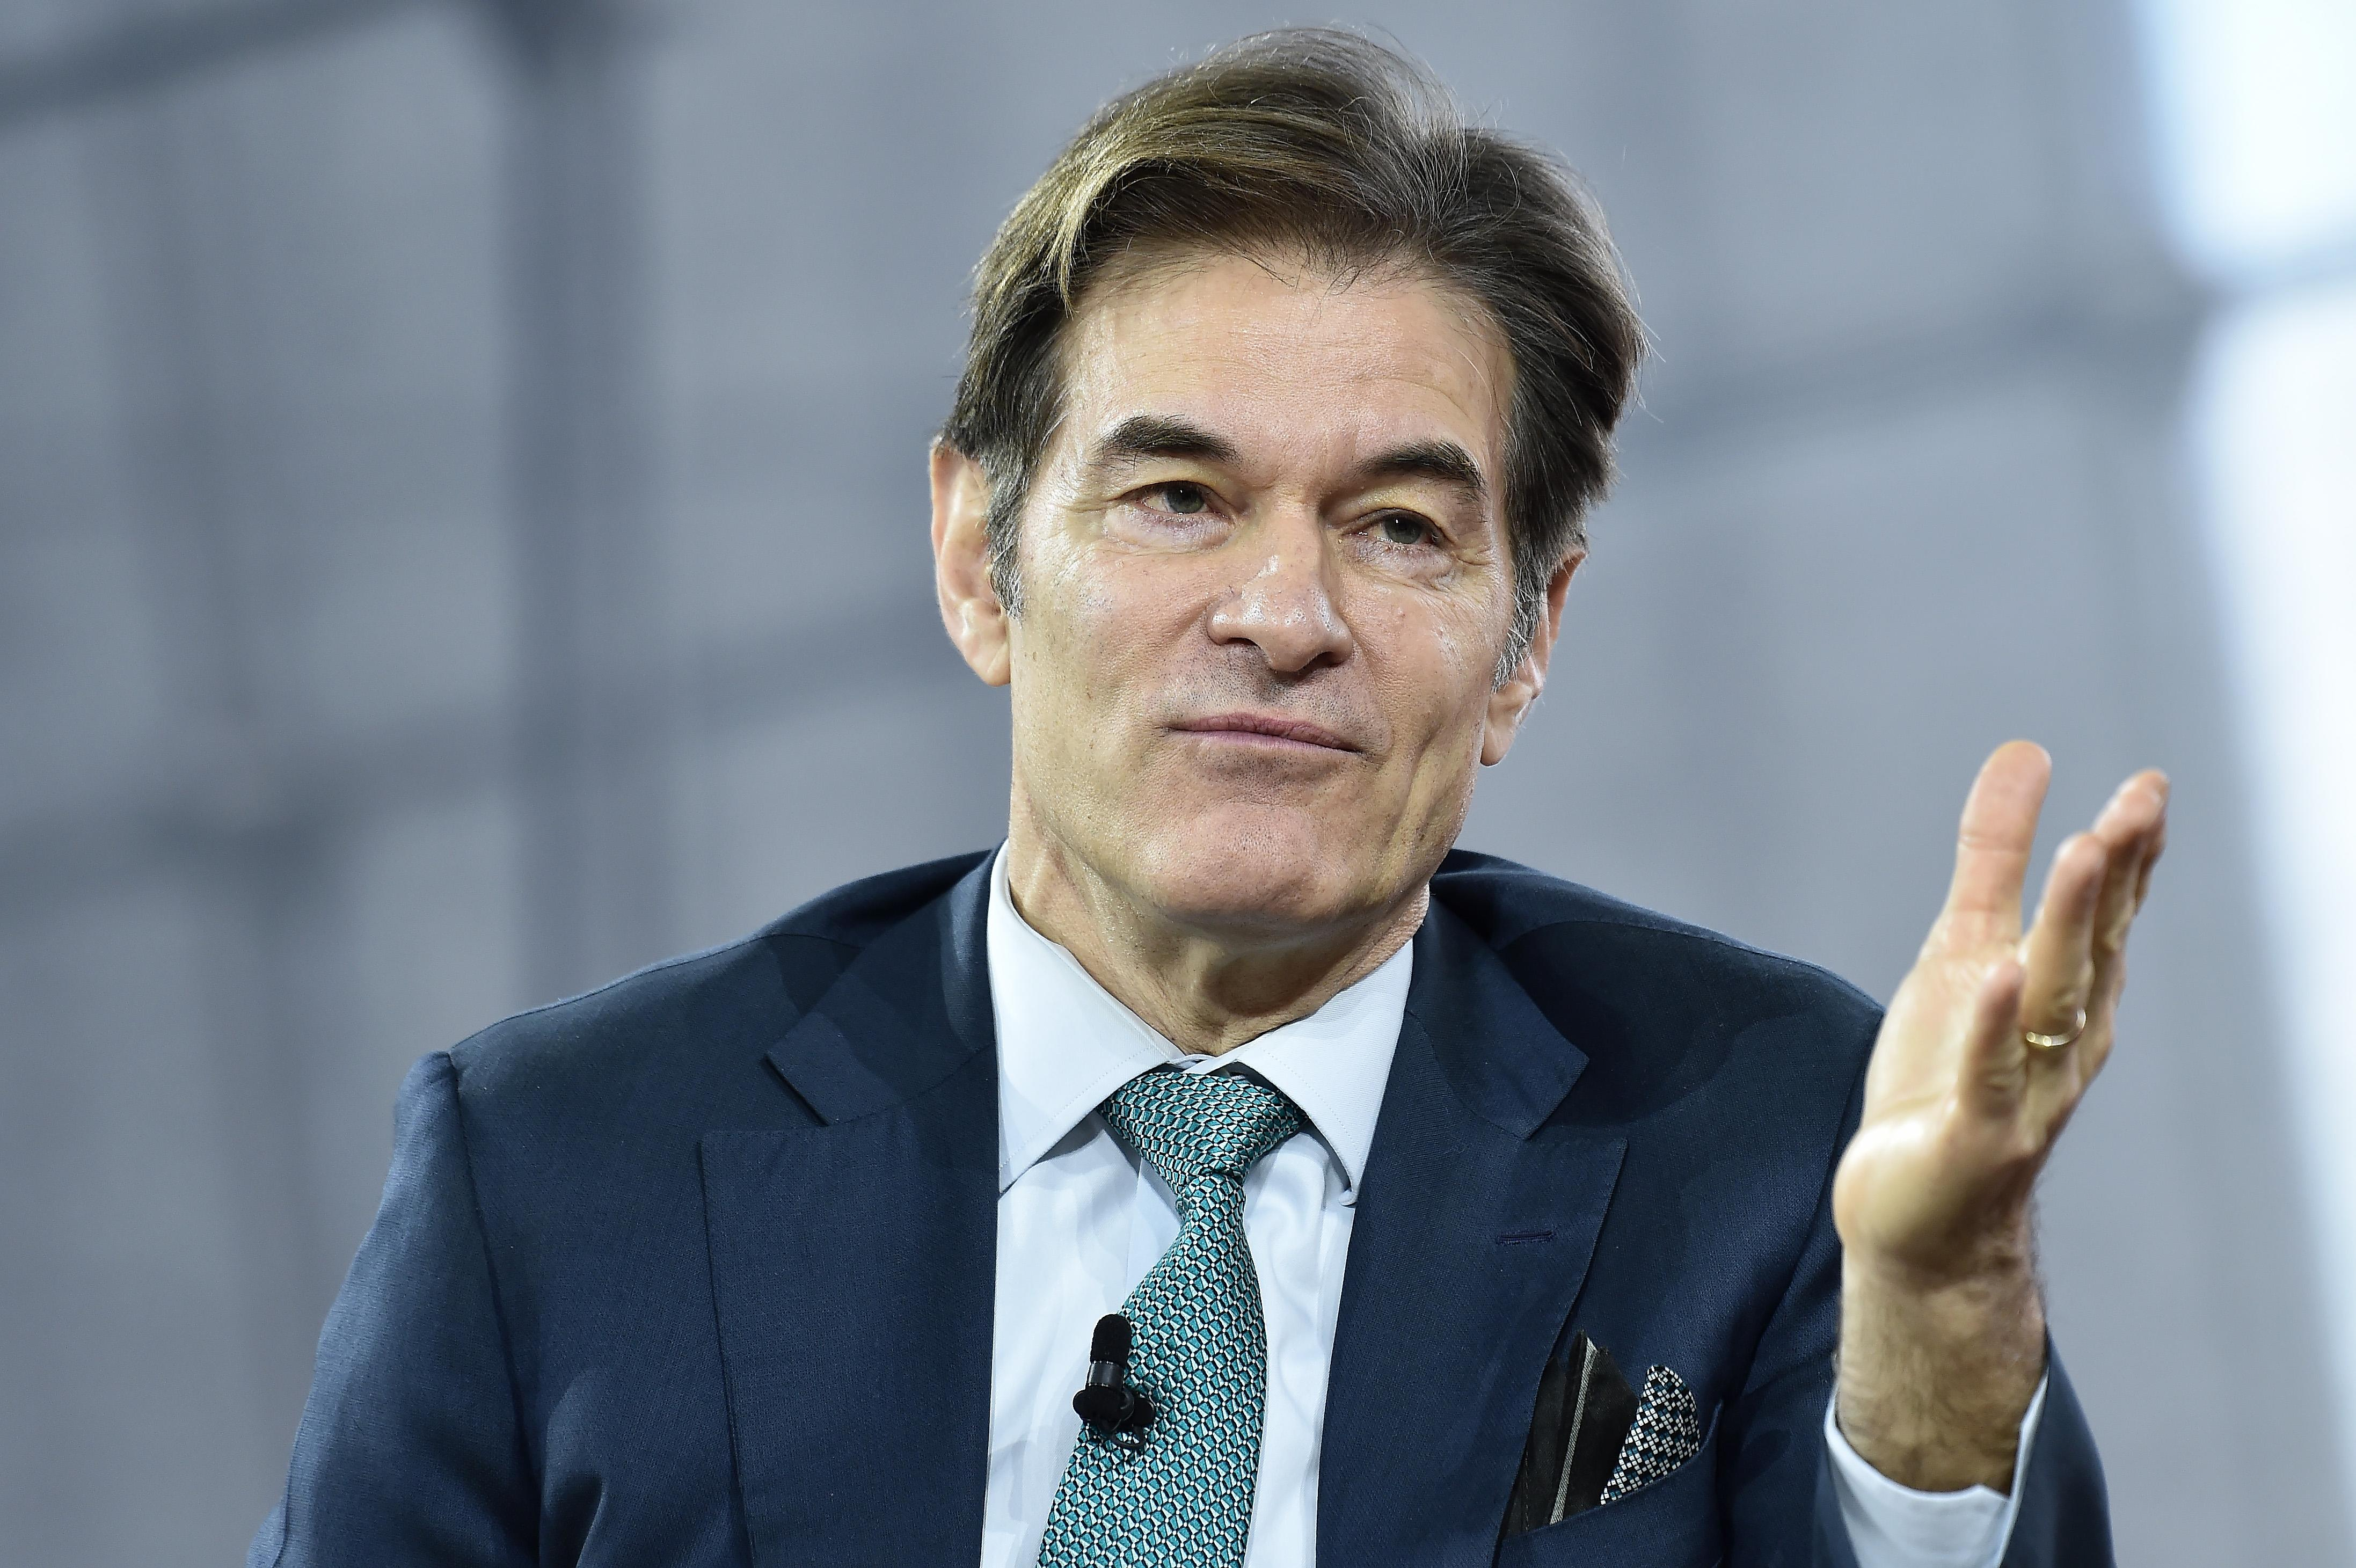 New coronavirus observations are 'surprising and a little concerning' says Dr. Oz